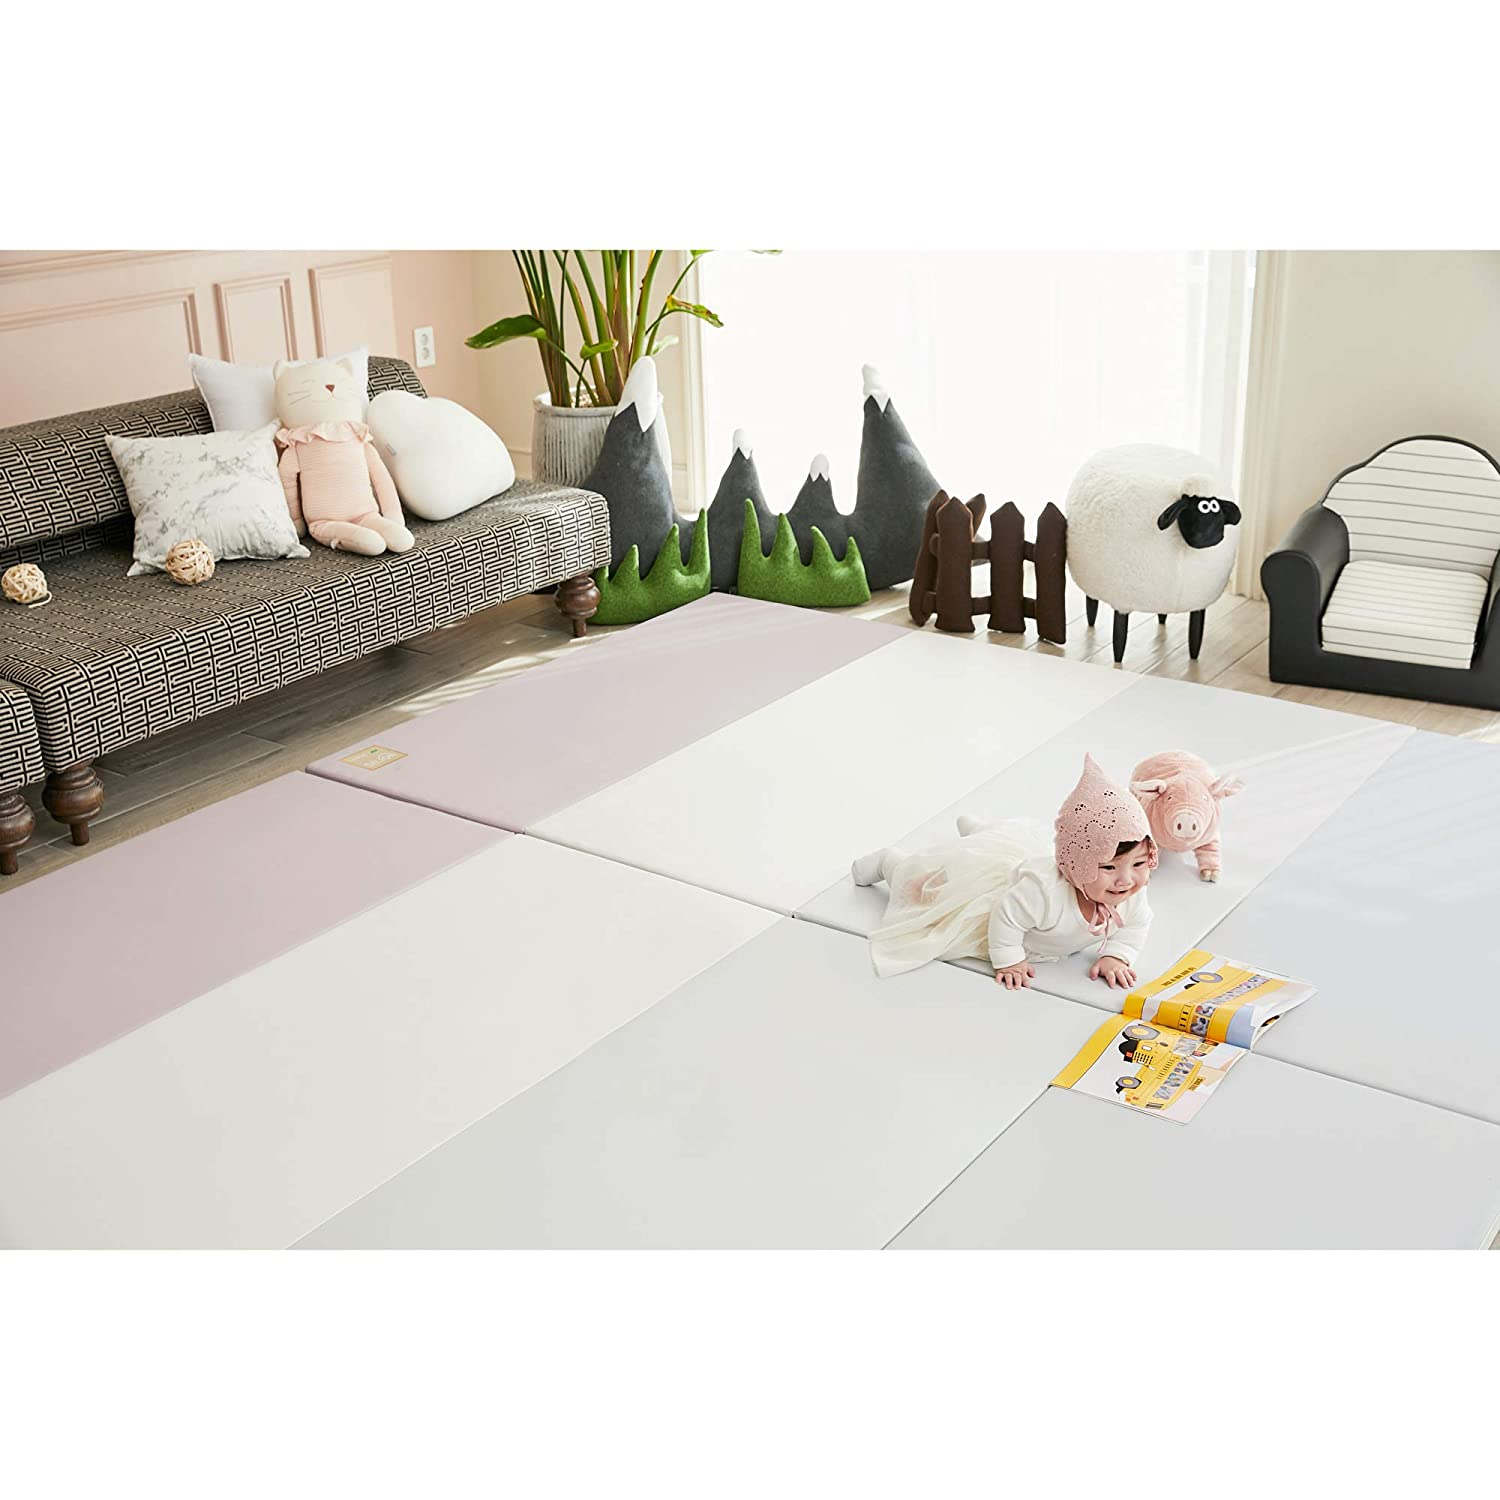 Perfect for Crawling SG size 240x140 cm Thick and Large Dust Zero: Urban Grey ALZIP Dust Zero Baby Play Mat Certified Non Toxic Tummy time and Noise Reduction